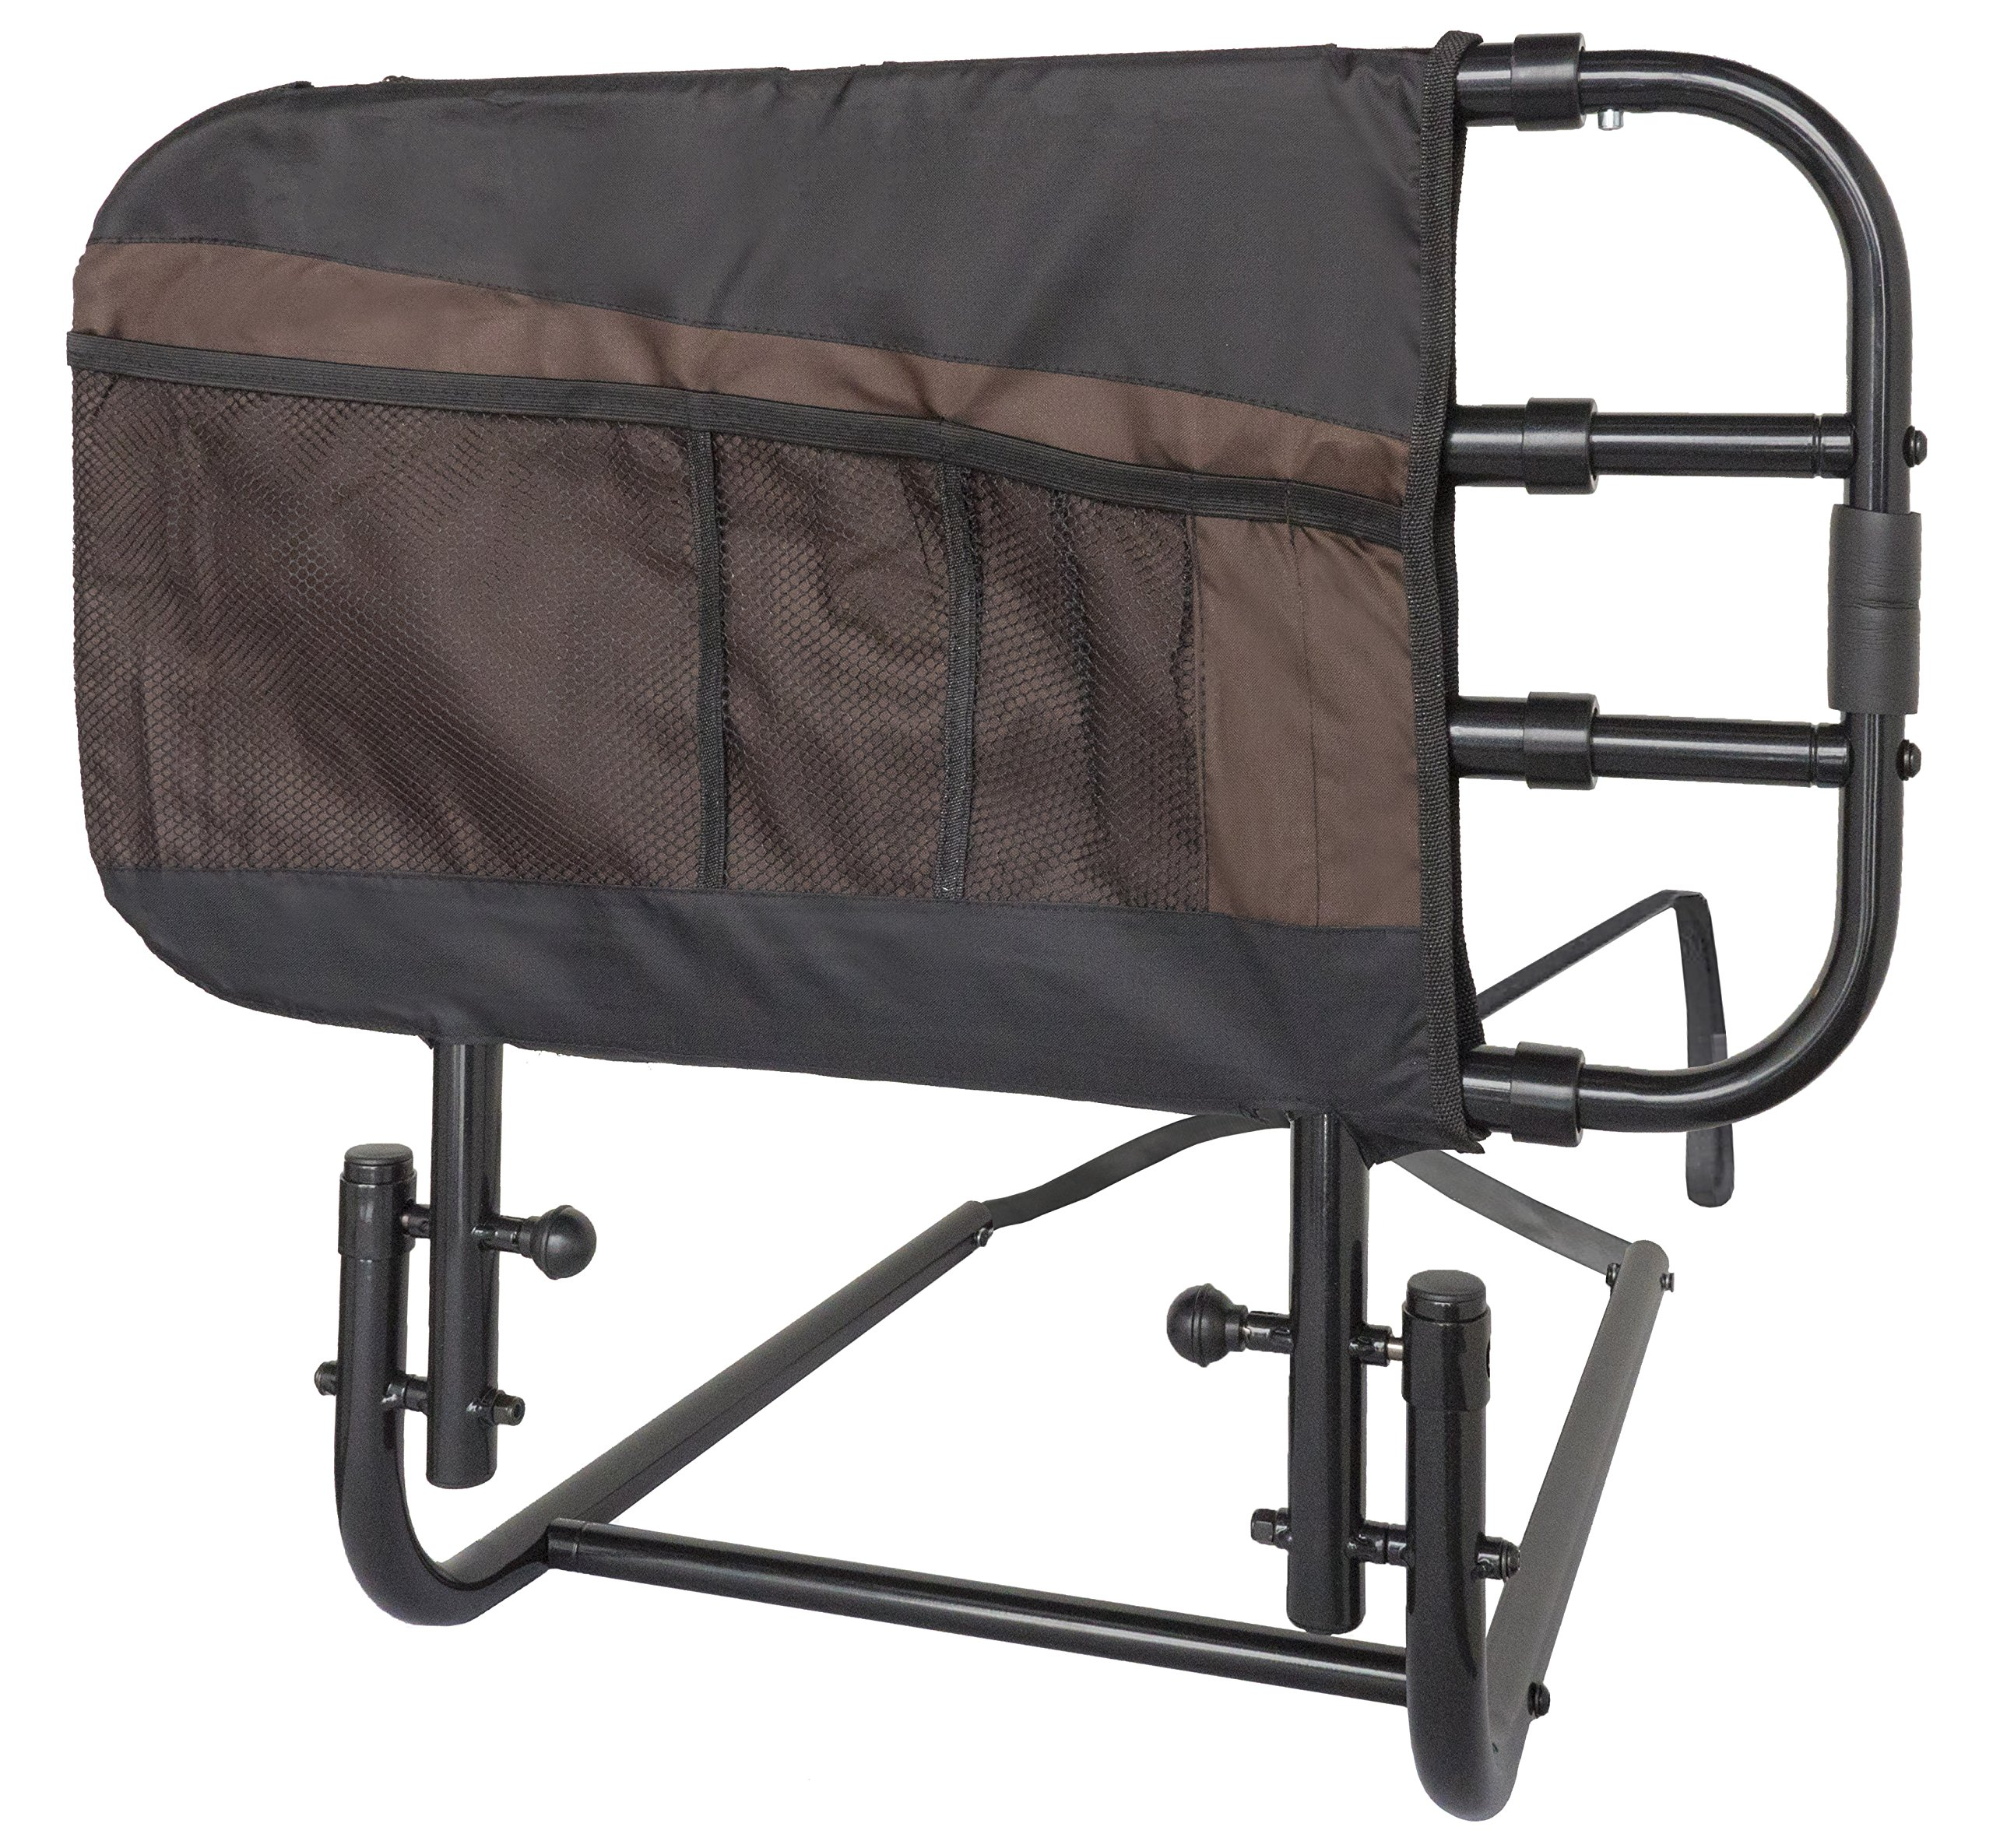 Stander EZ Adjust and Pivoting Adult Home Bed Rail/Swing Down Assist Handle with Pouch by Stander